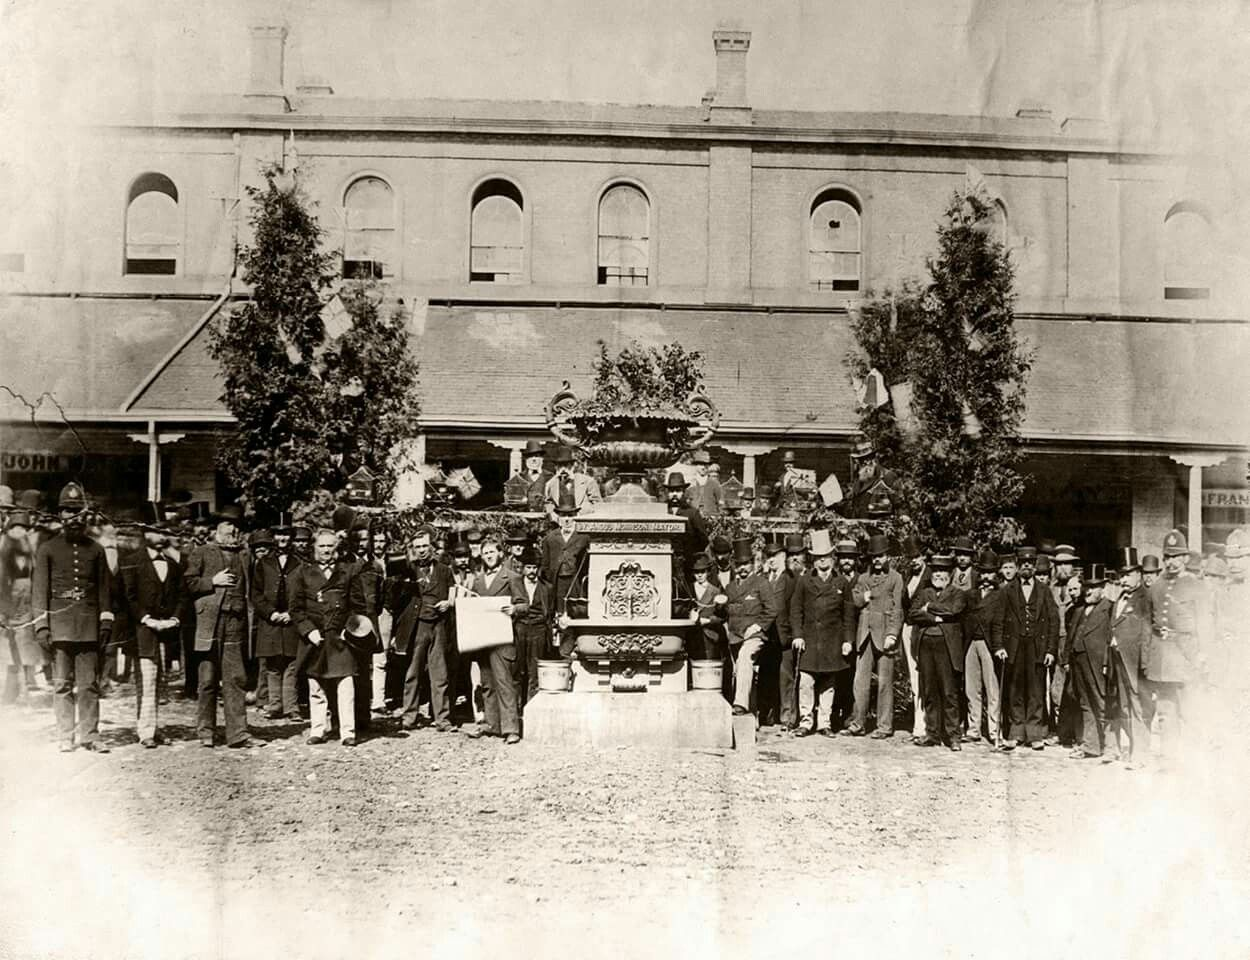 Fountain, St. Lawrence Market, in front of west side of south front of north market, unveiling, 1877. Fountain given to city by Mayor Angus Morrison, later moved to Ferry Docks. Photographer unknown. - Courtesy of the Toronto Public Library.